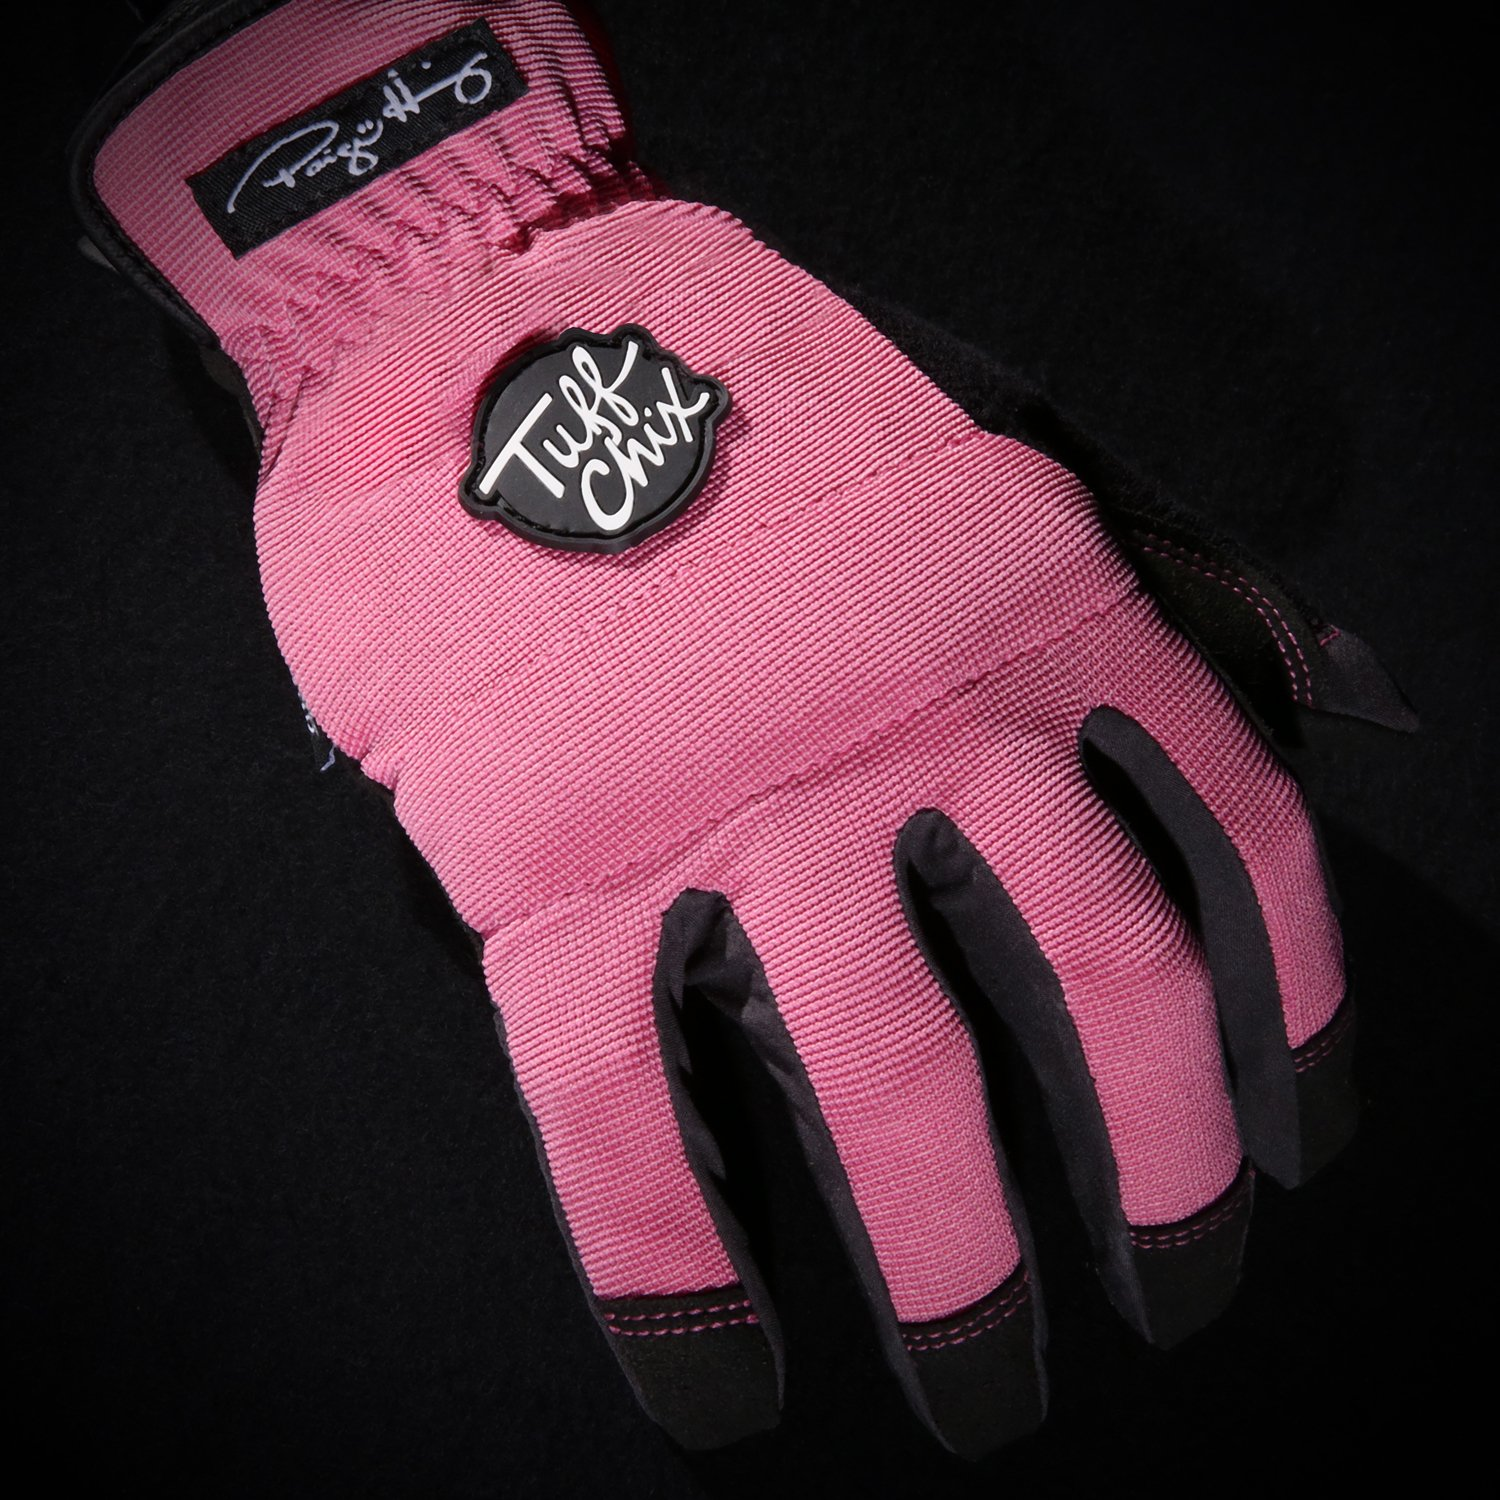 Ironclad Tuff Chix Women's Work Gloves TCX-22-S, Small by Ironclad (Image #5)